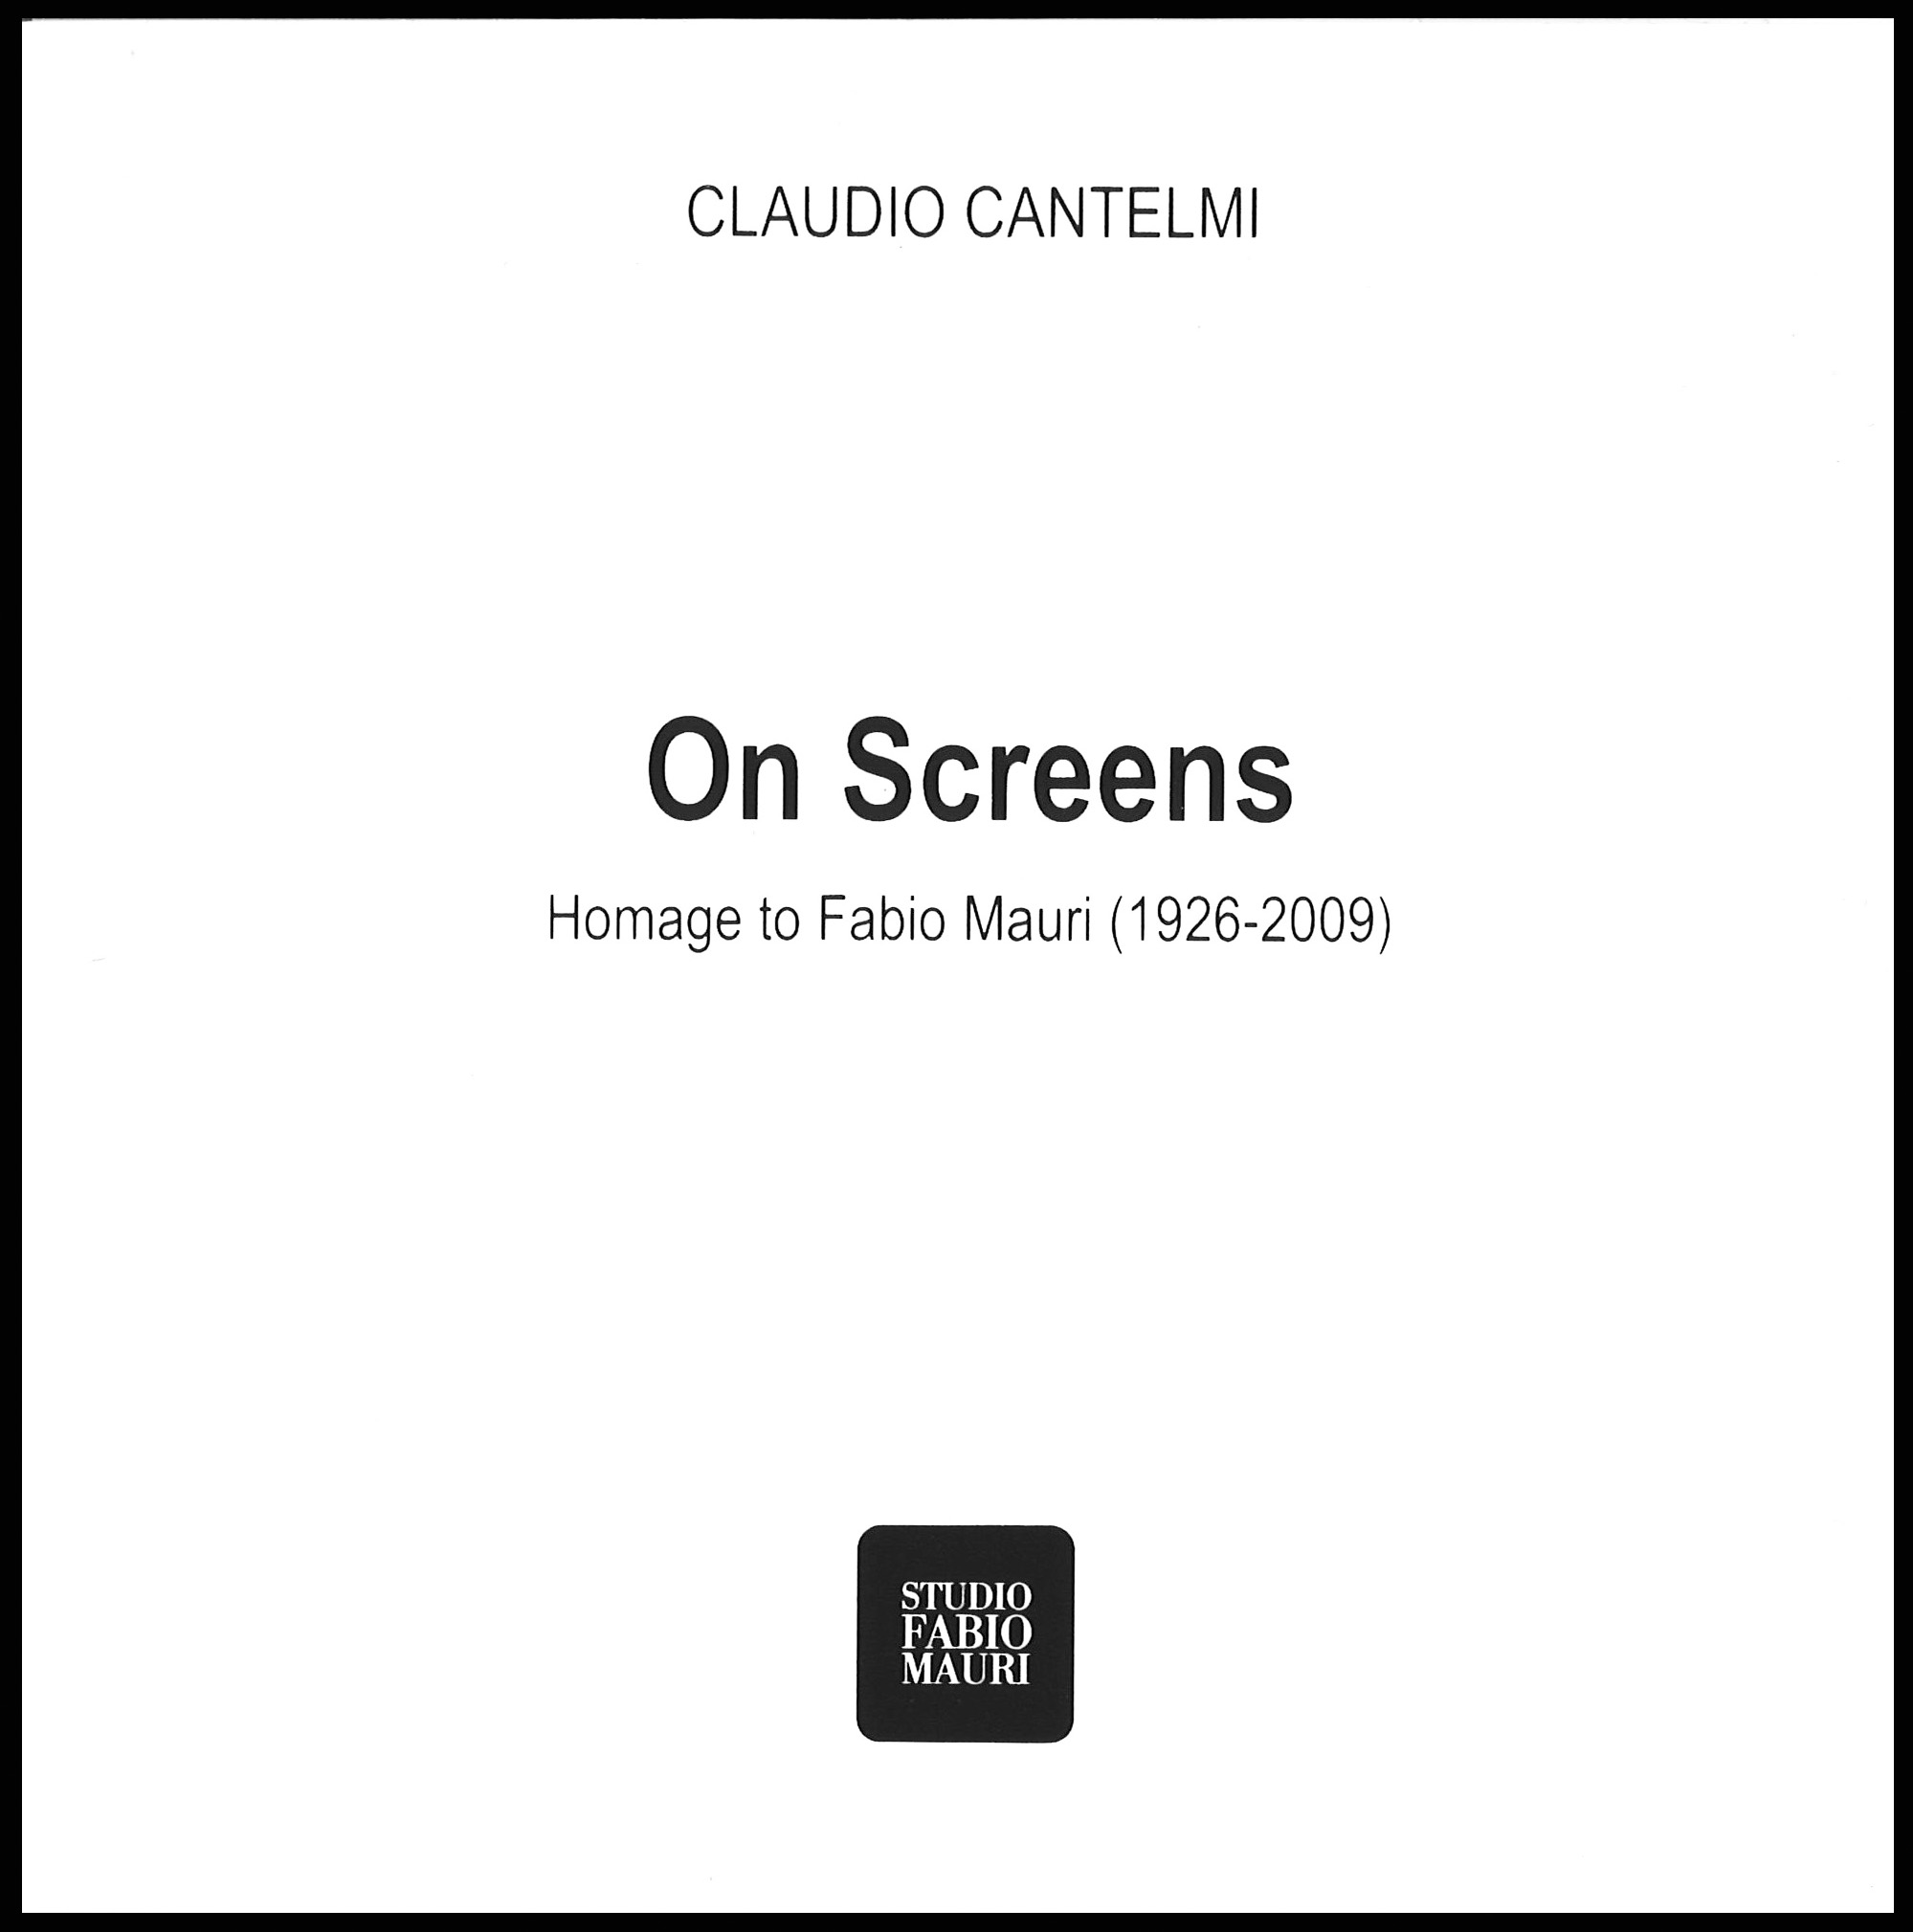 On Screens - Homage to Fabio Mauri (1926-2009)